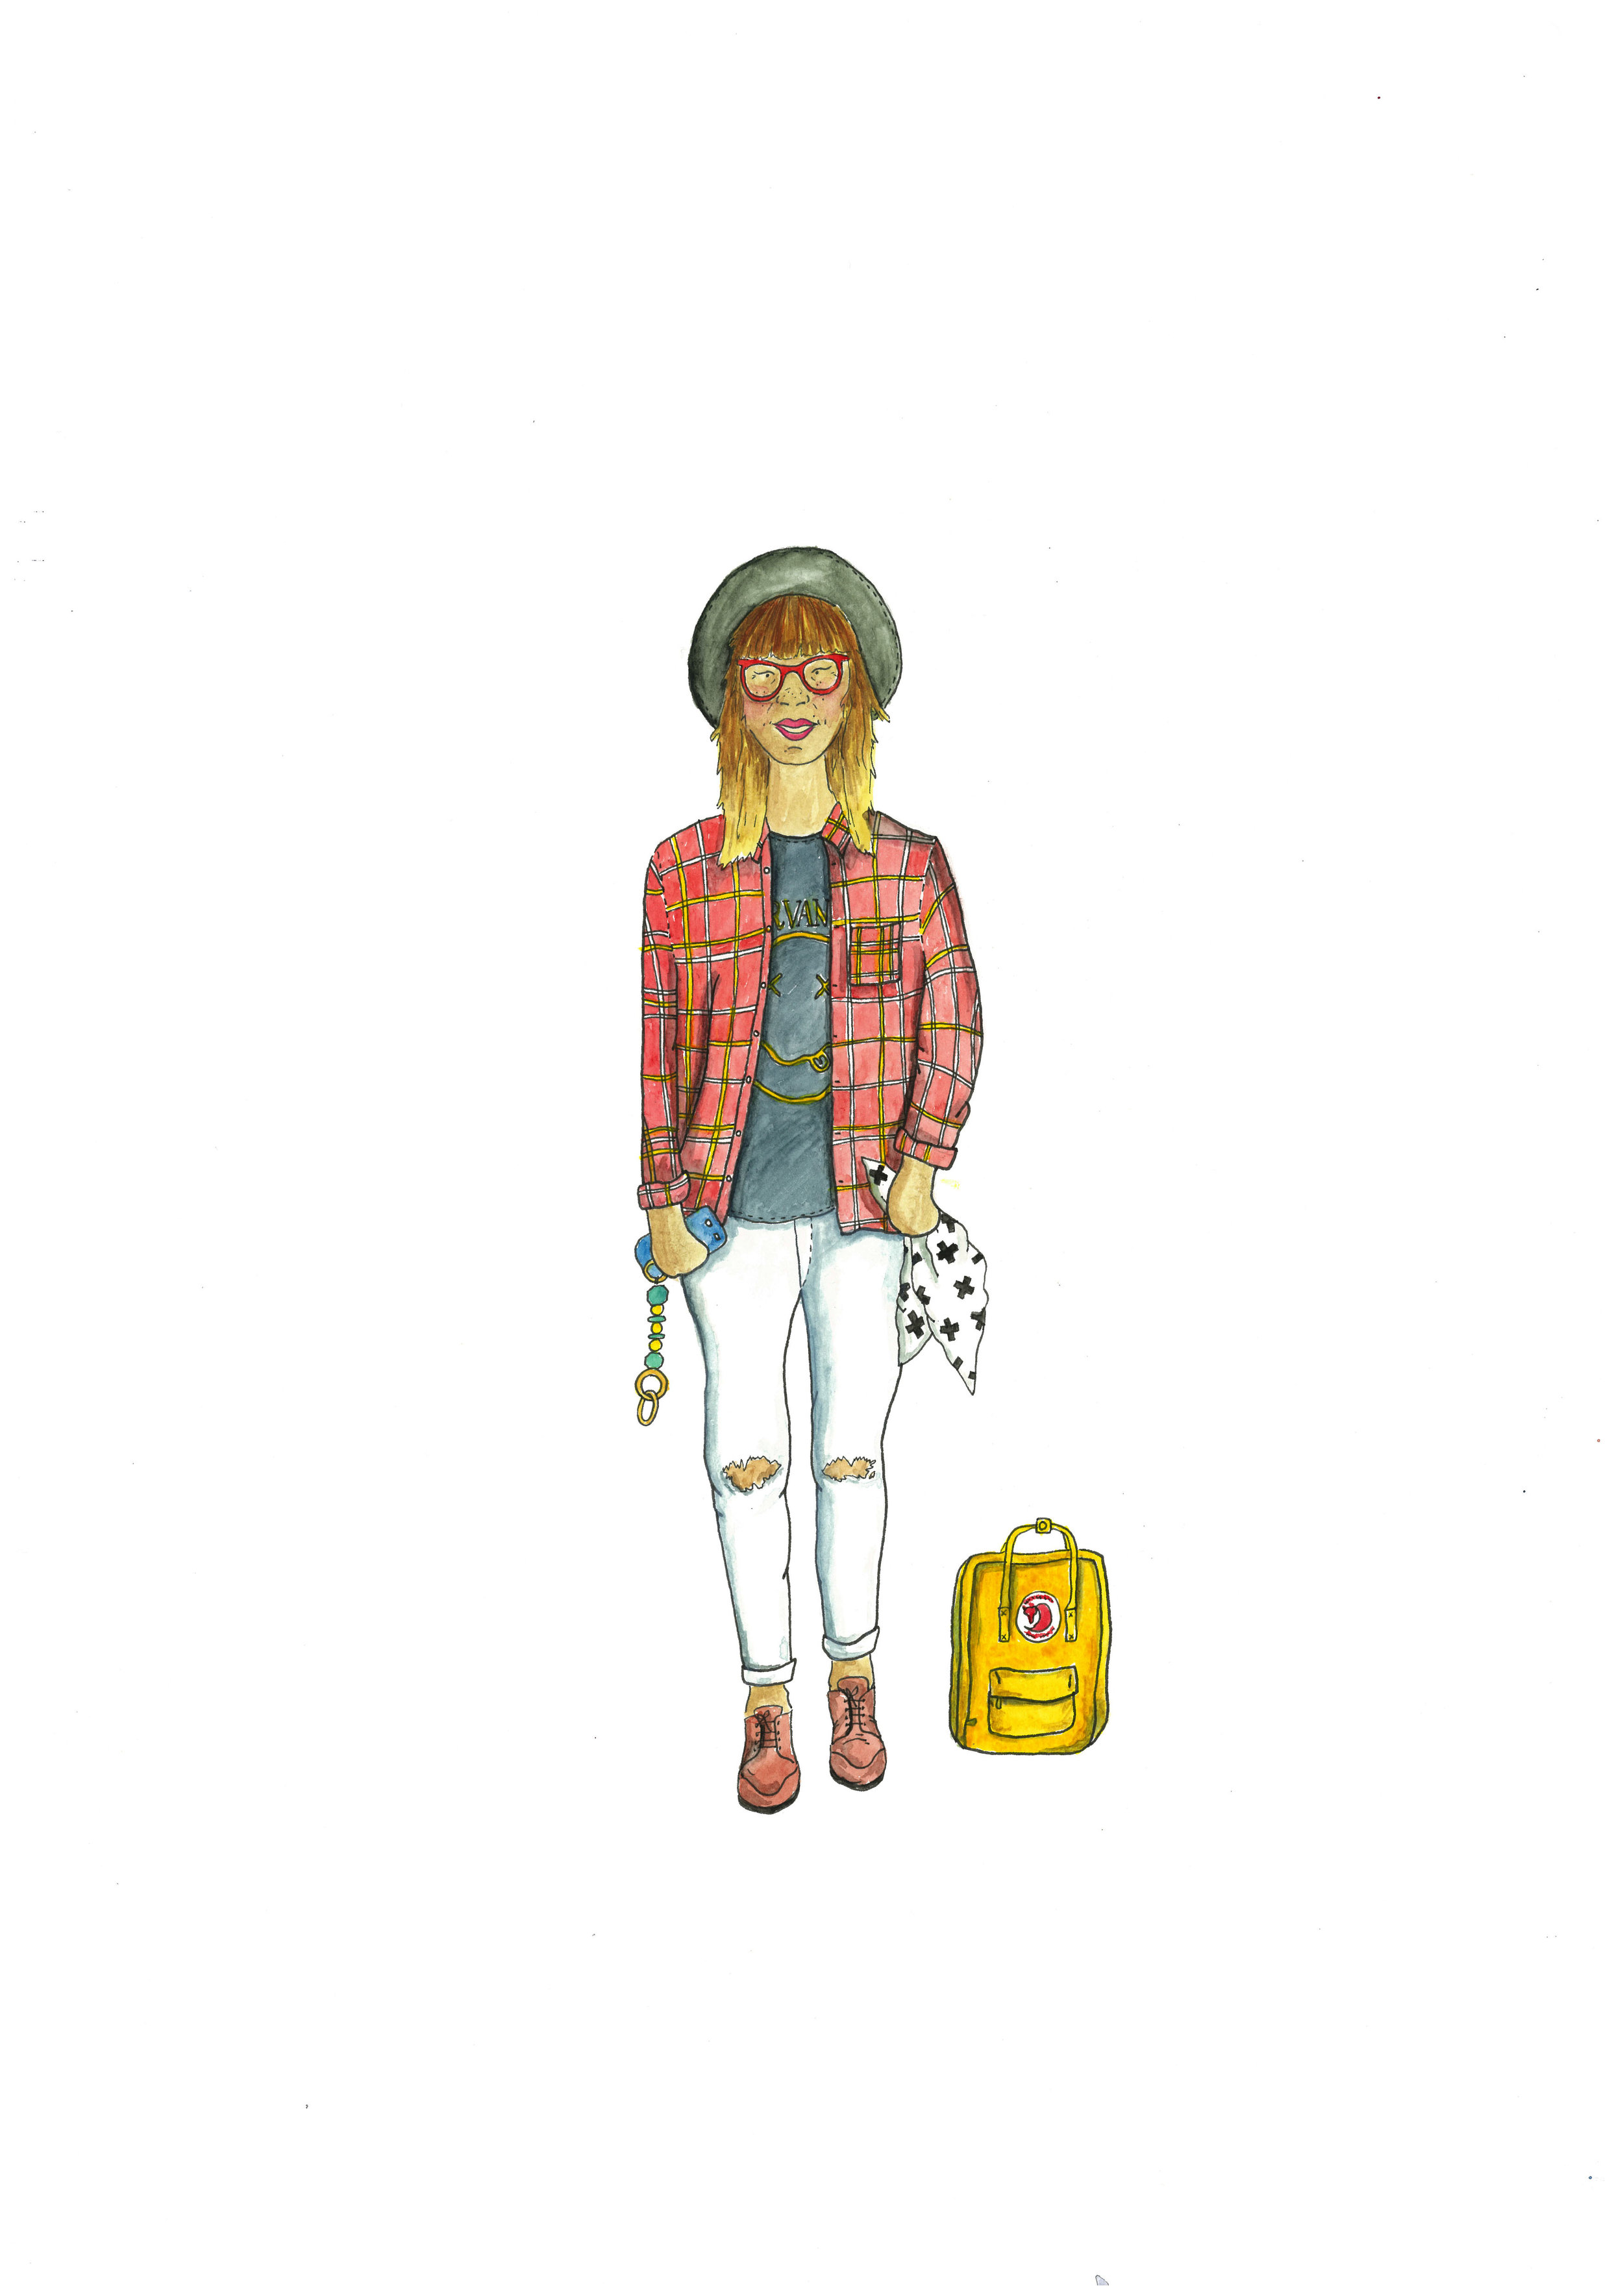 Hipster Mum Illustration by Awesome Mama Illustration.jpg